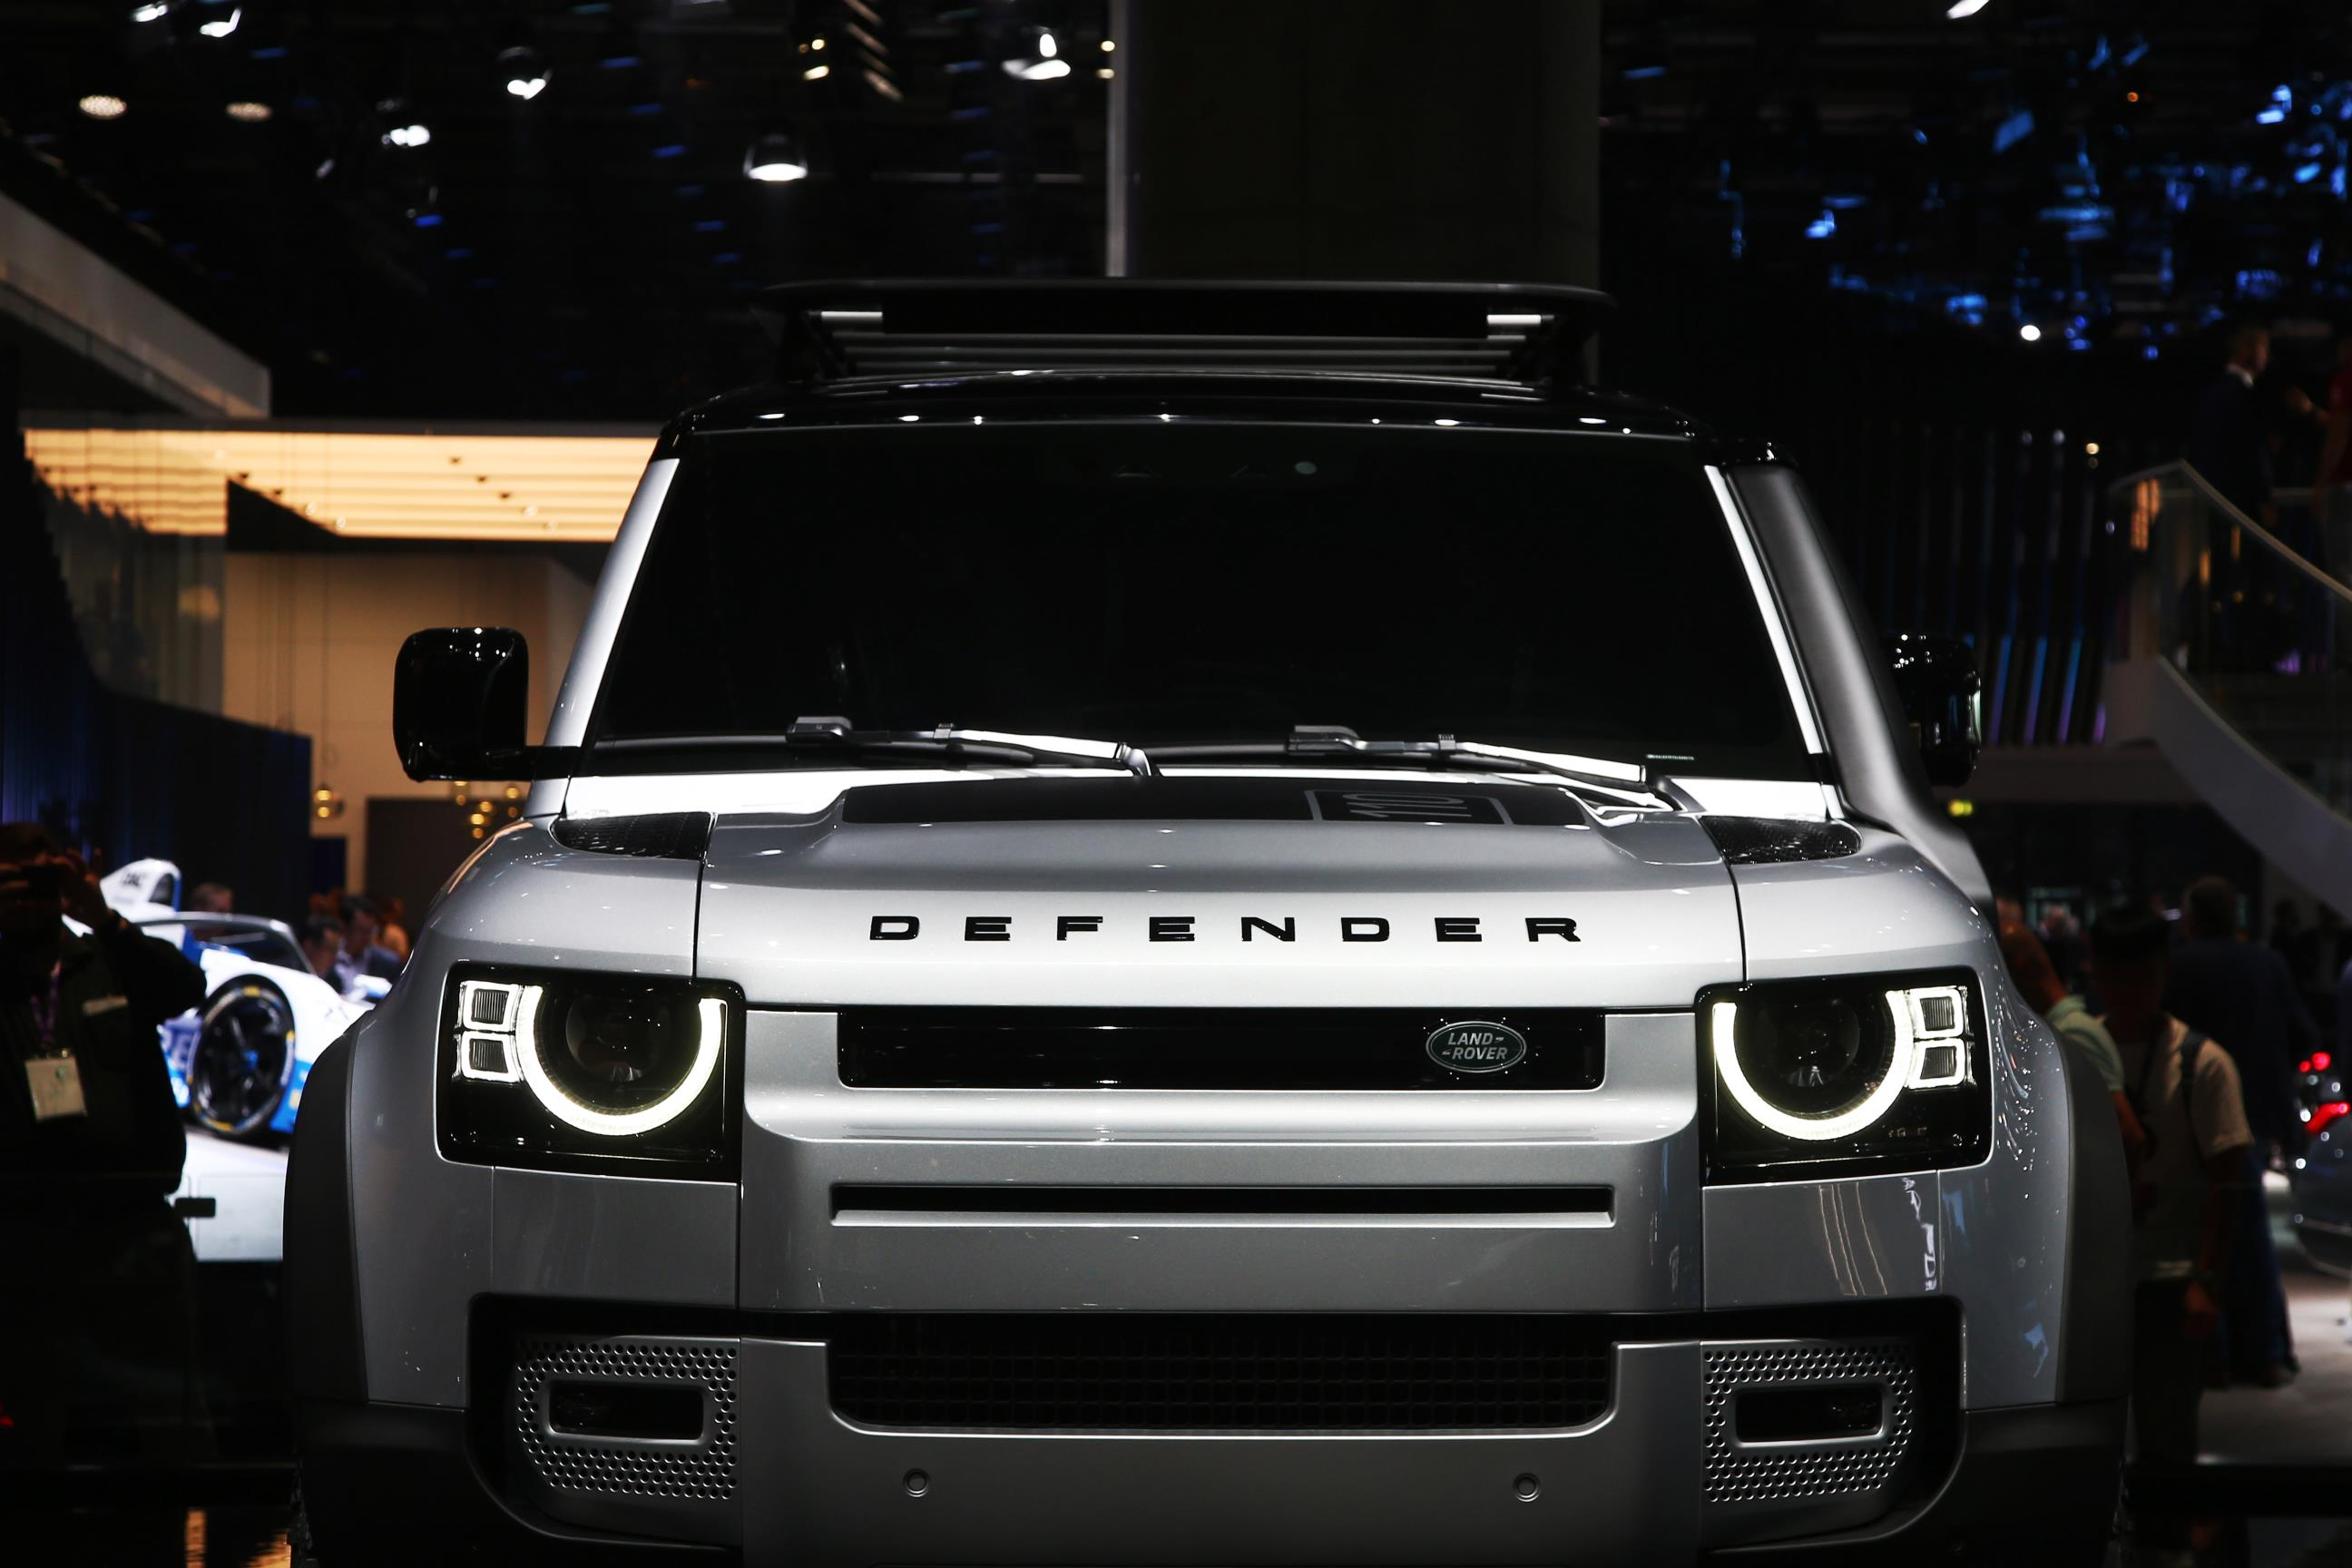 2020 Land Rover Defender 110 Headlight